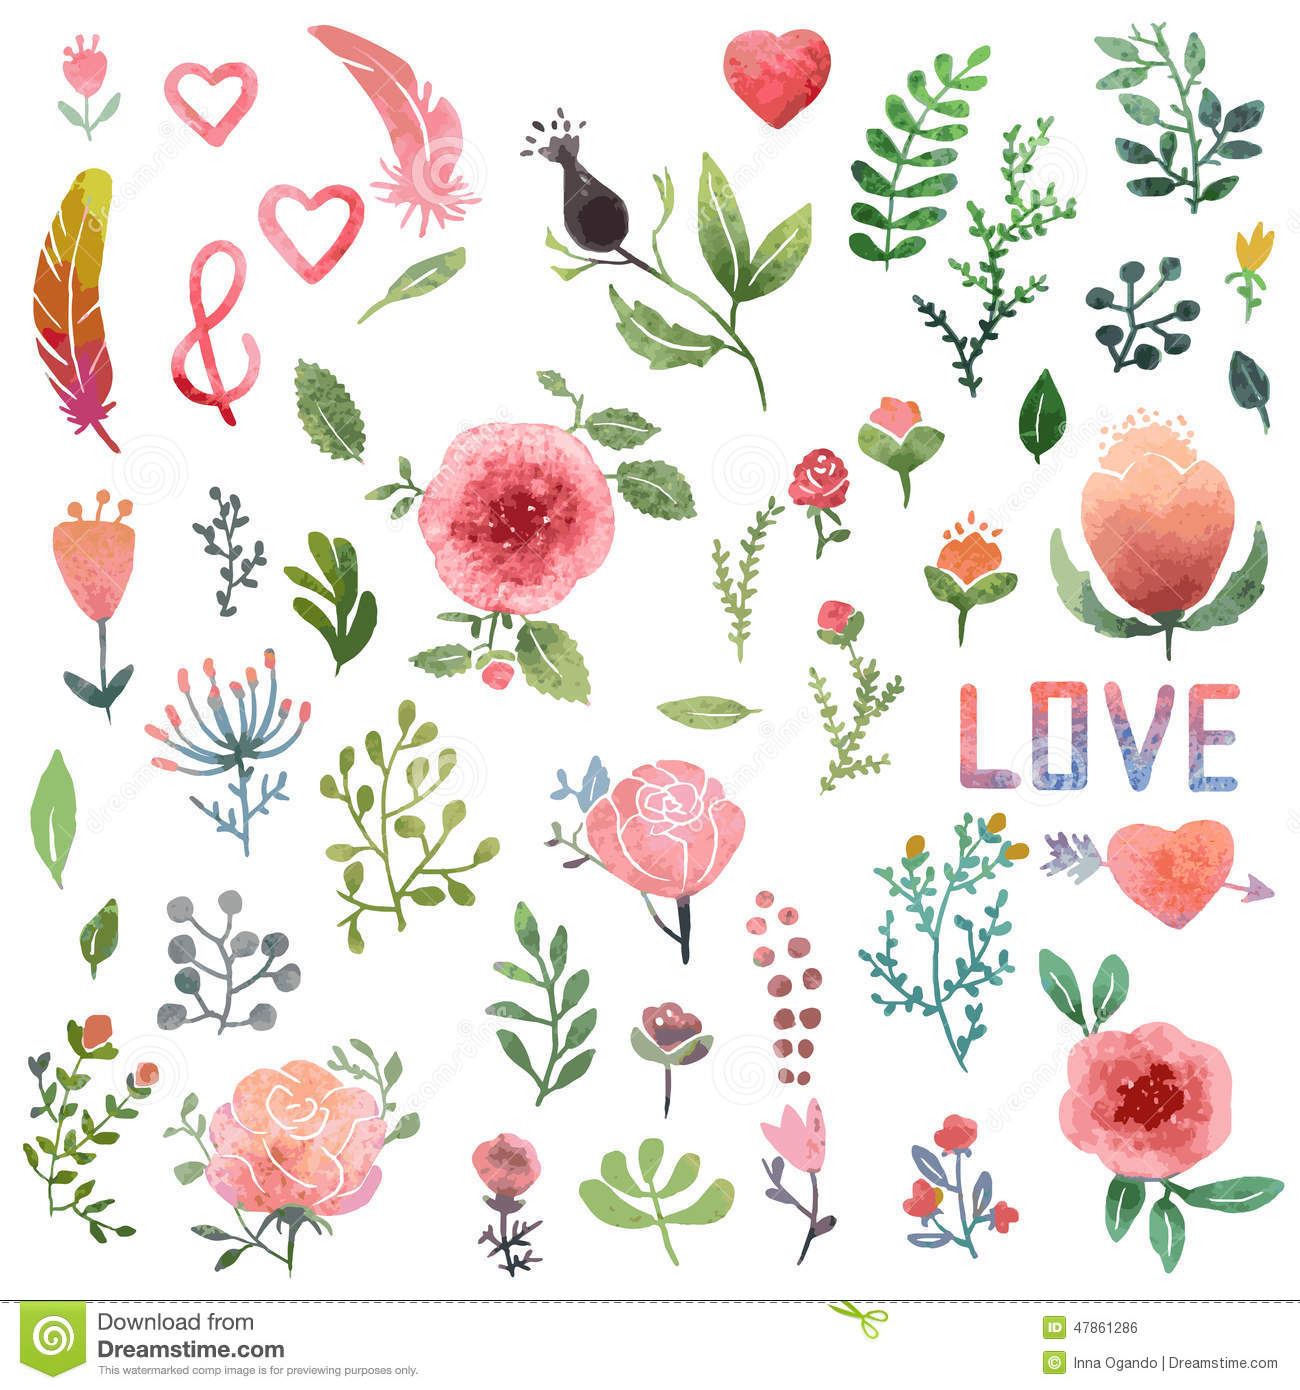 Wedding Tree Watercolor Clipart: Clipart Panda - Free Clipart Images